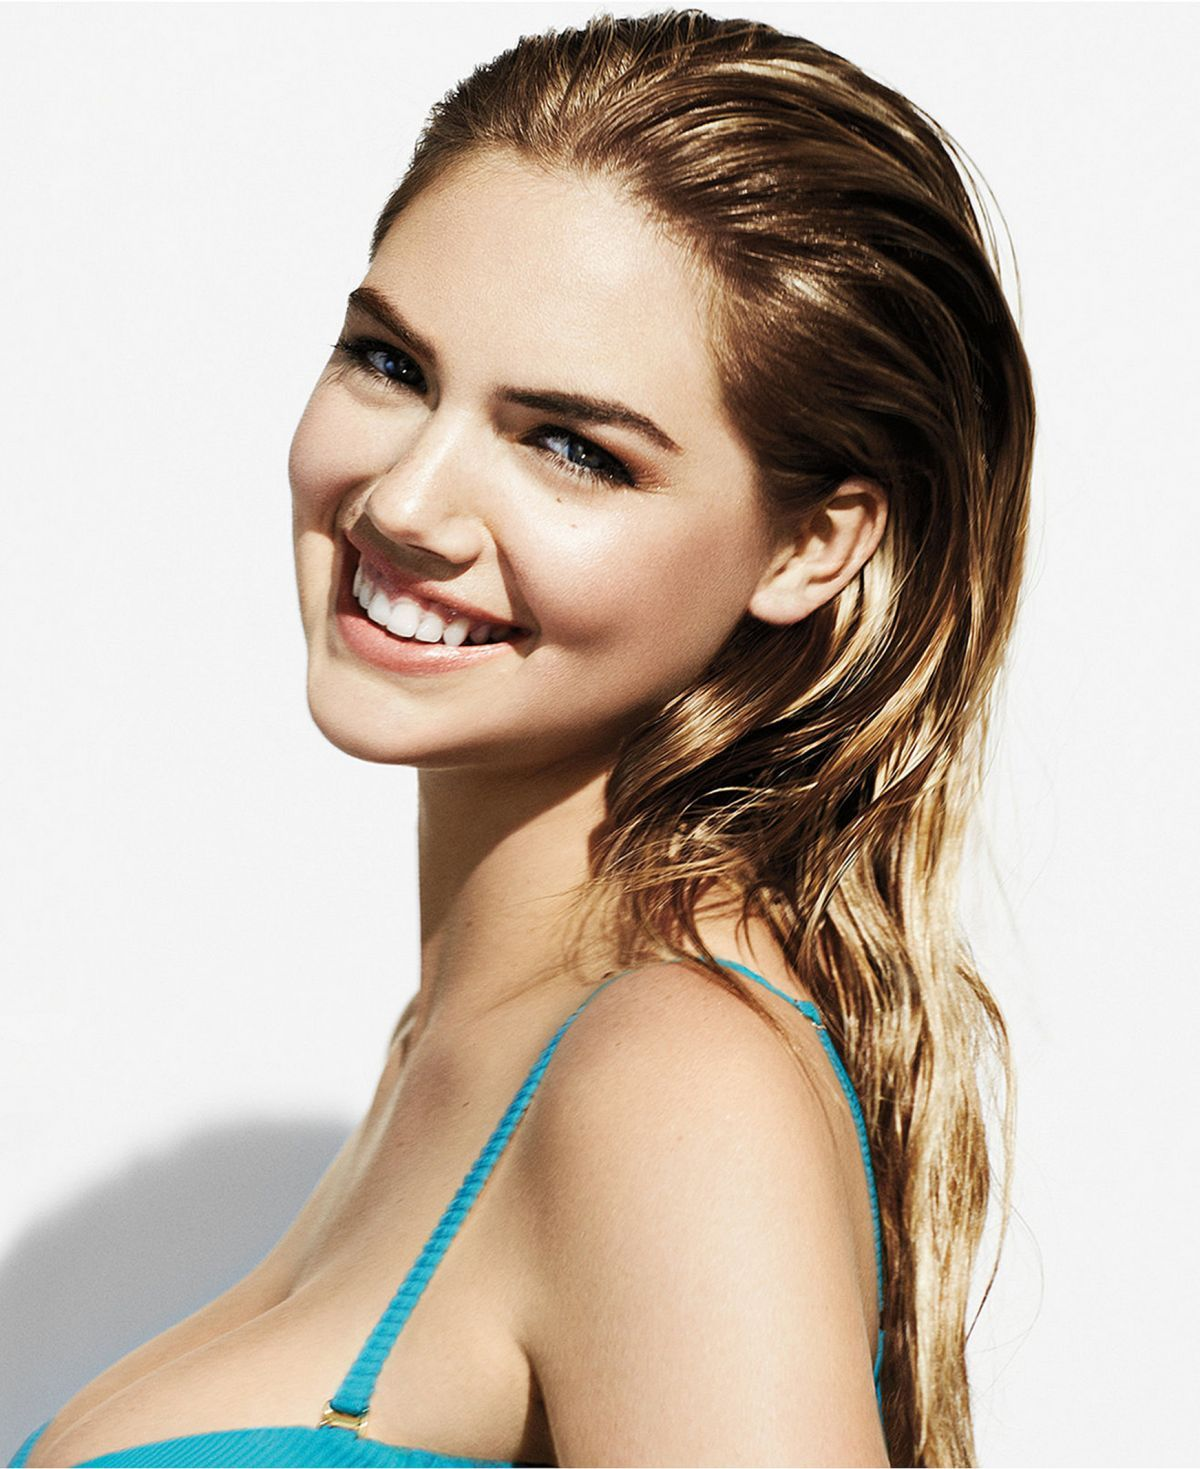 Molly sims archives page 2 of 7 hawtcelebs hawtcelebs - Kate Upton Bobbi Brown Sandy Nudes Makeup Collection Hawtcelebs